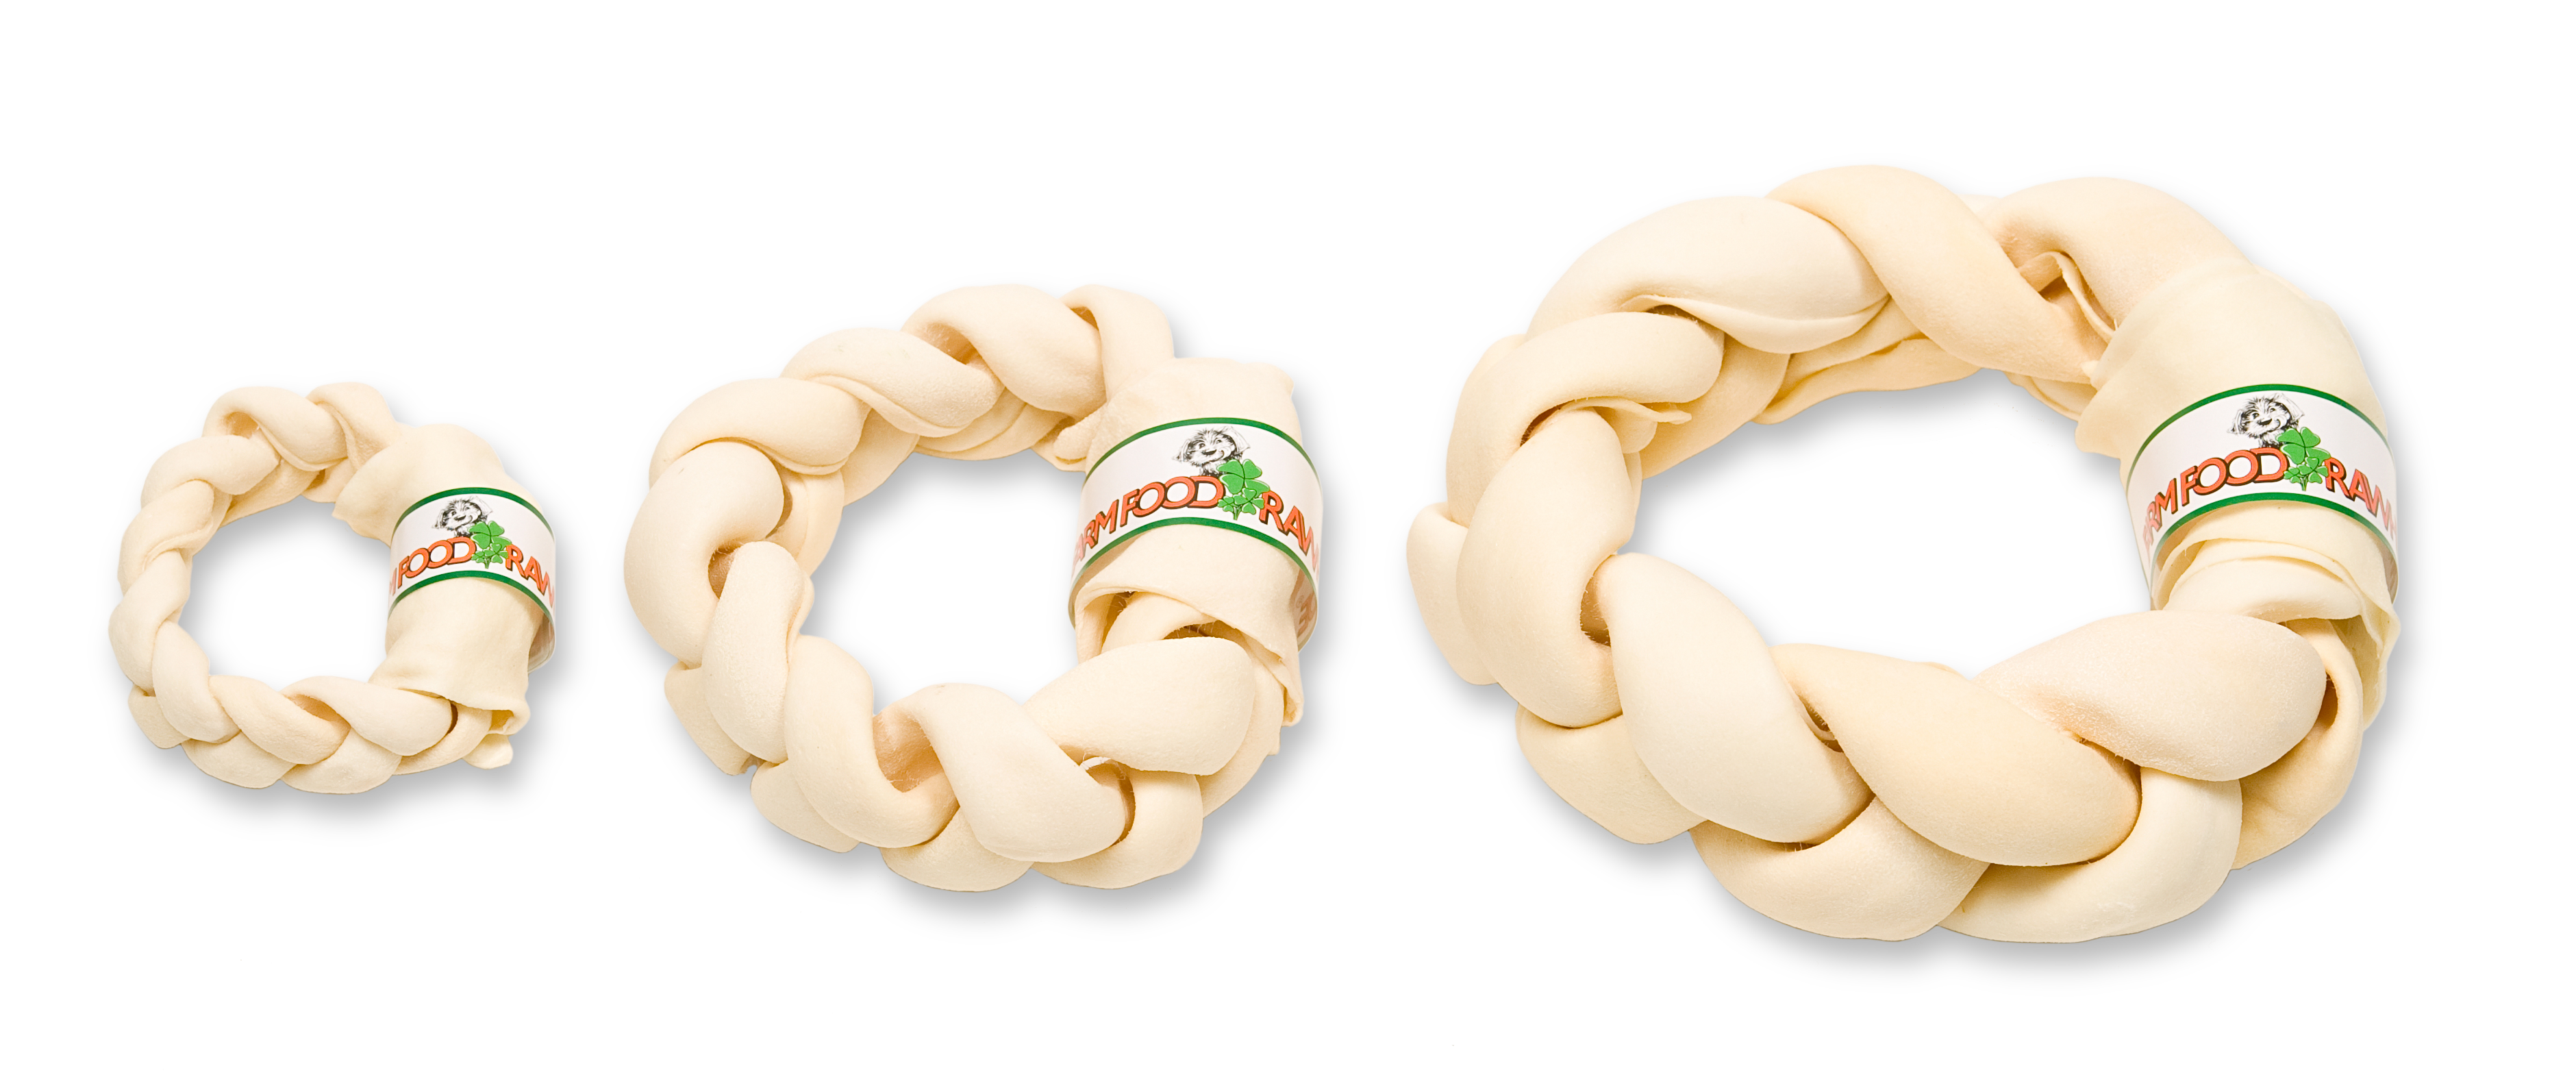 Farm Food - Rawhide Dental Braided Donut S, M & L Image